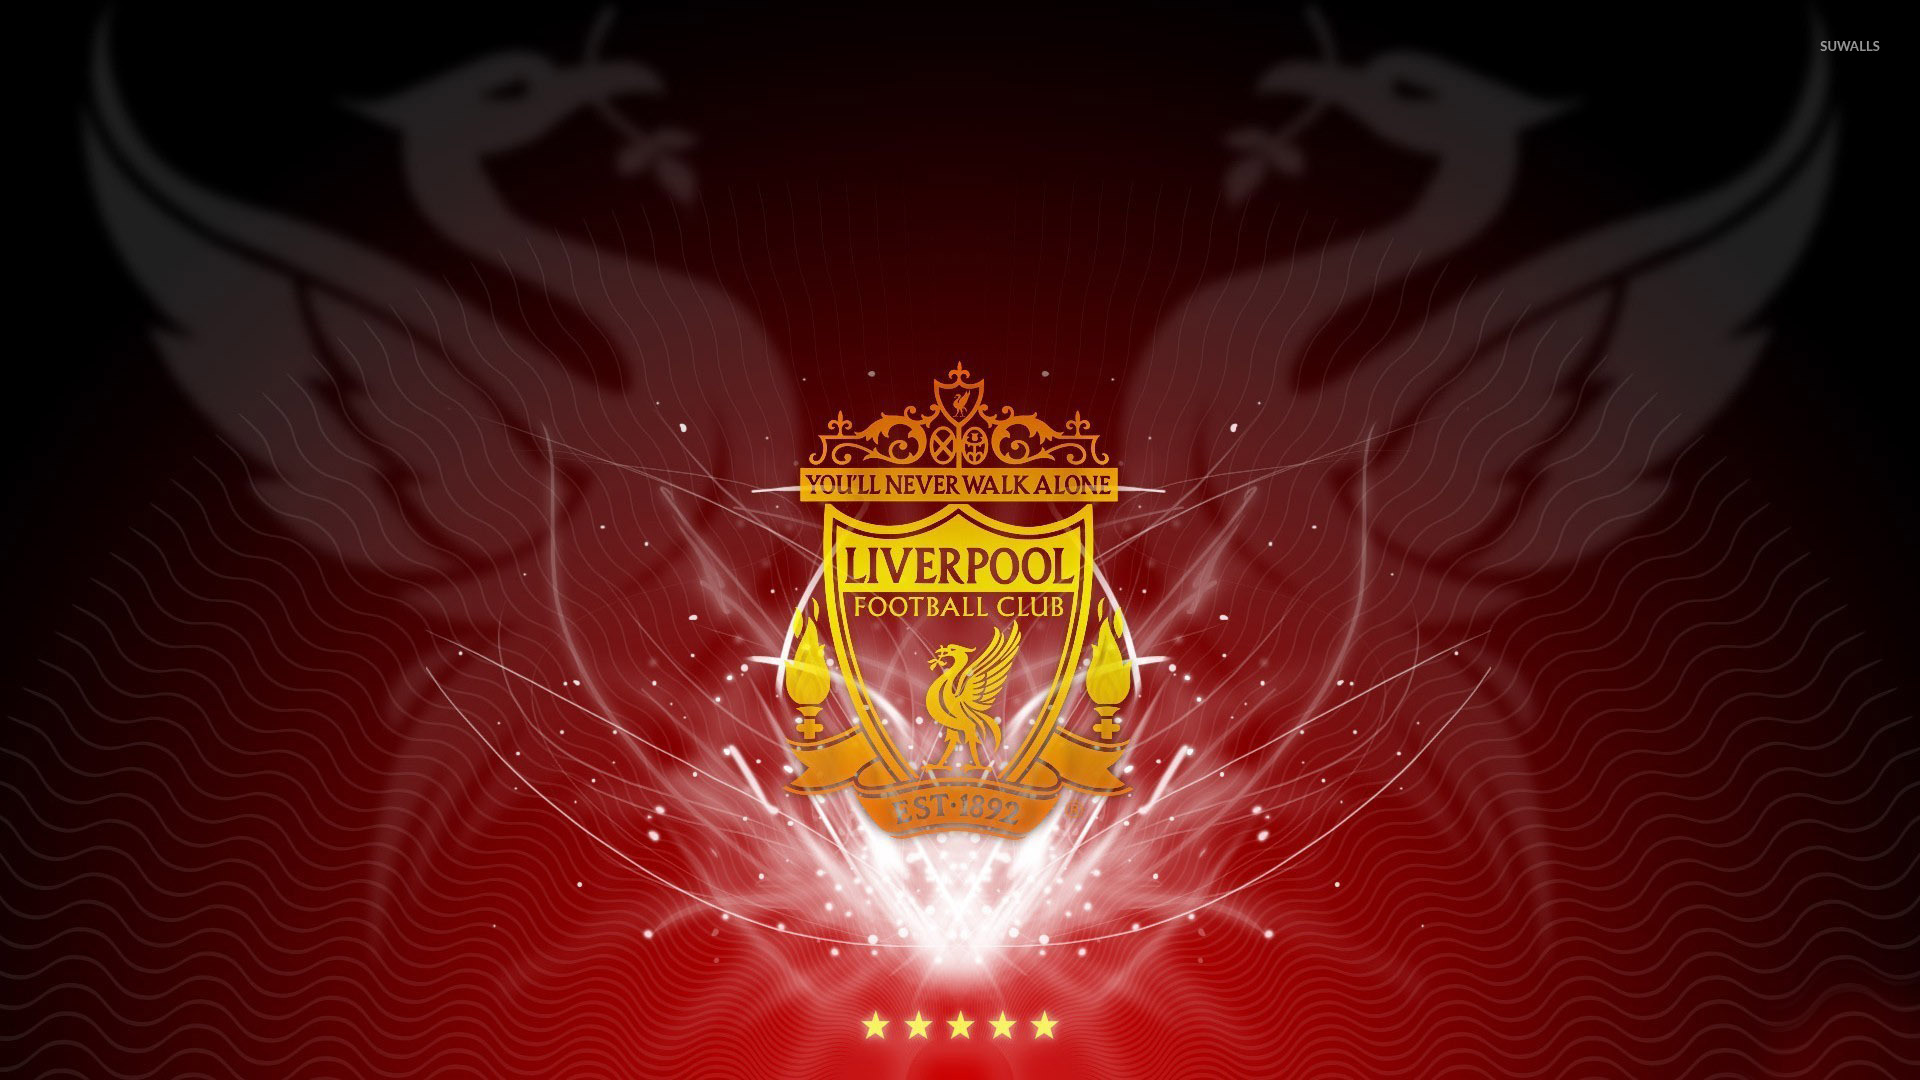 Keep Calm An You Ll Never Walk Alone Wallpaper Typography